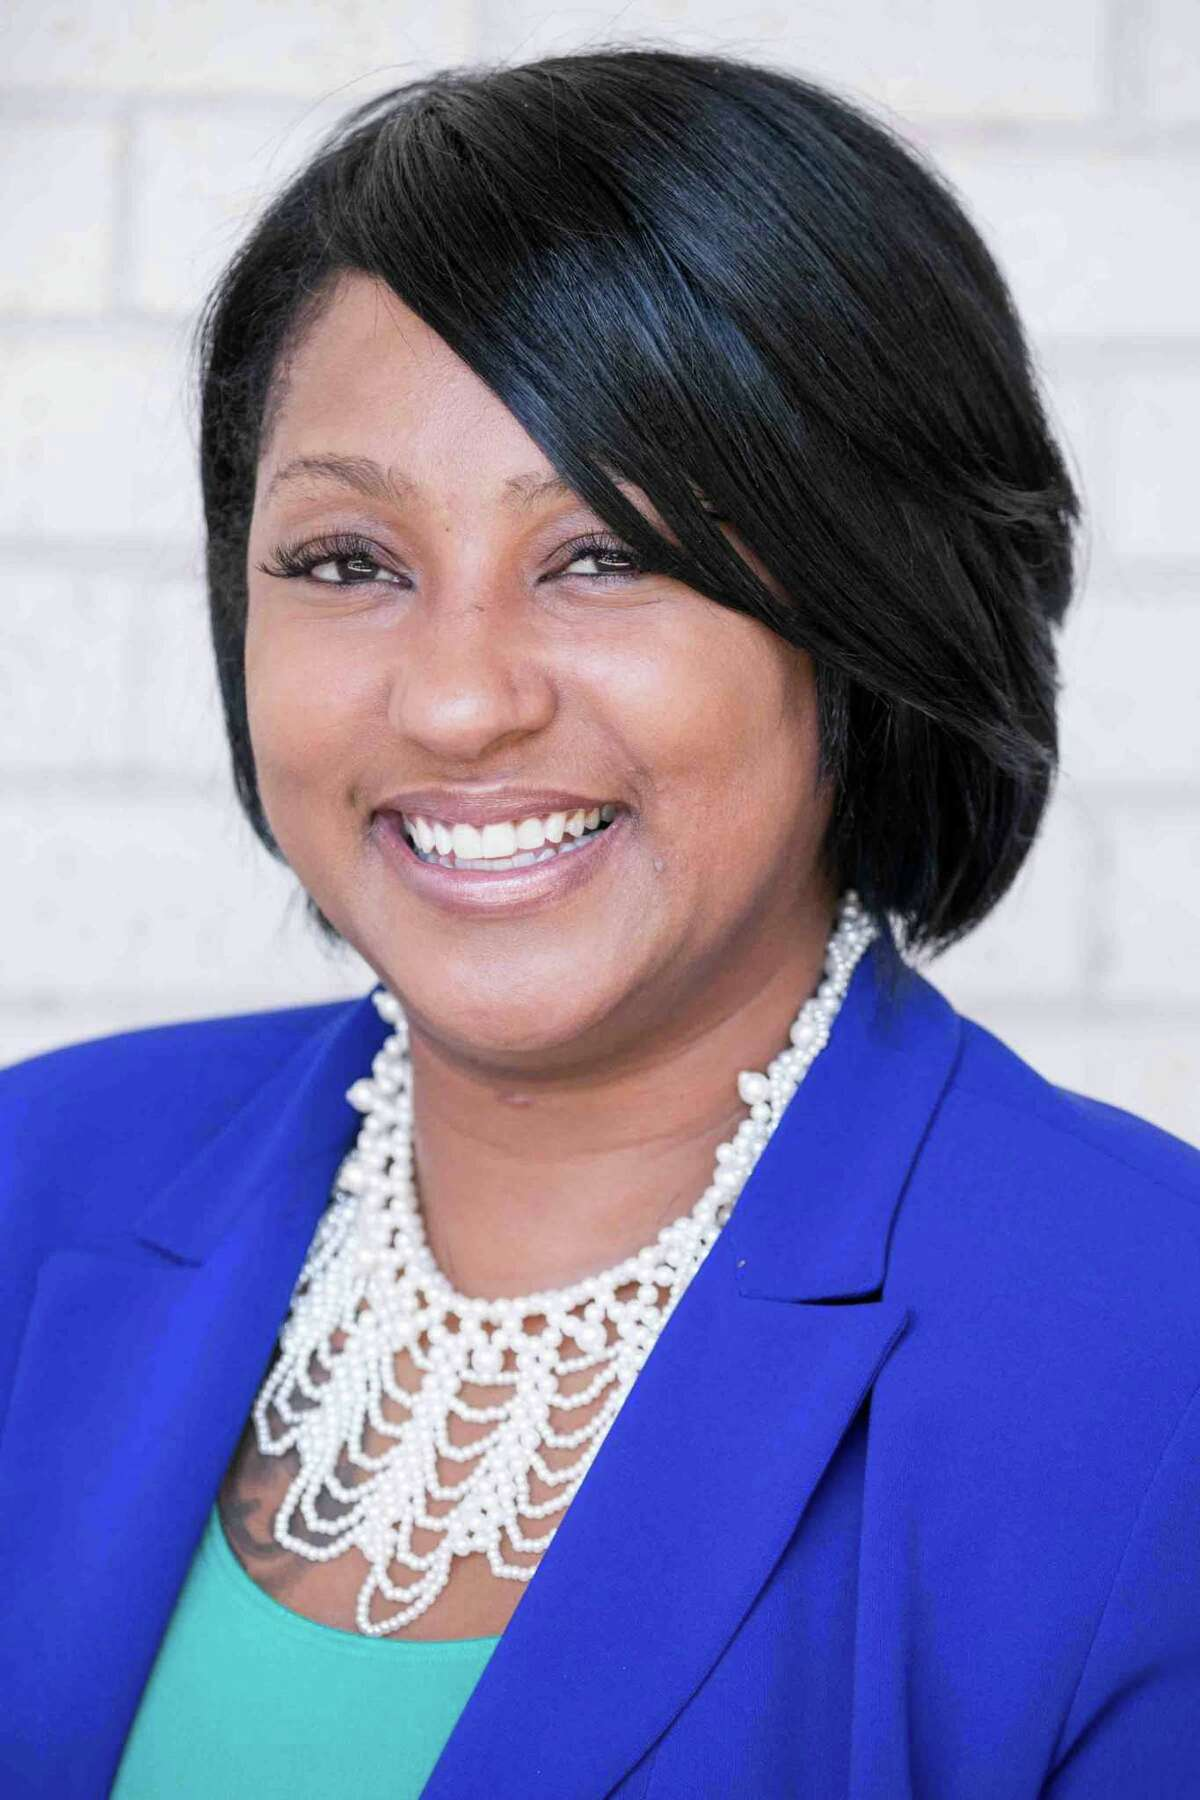 Alicia Perry is running for a seat on the SAISD board representing District 2.